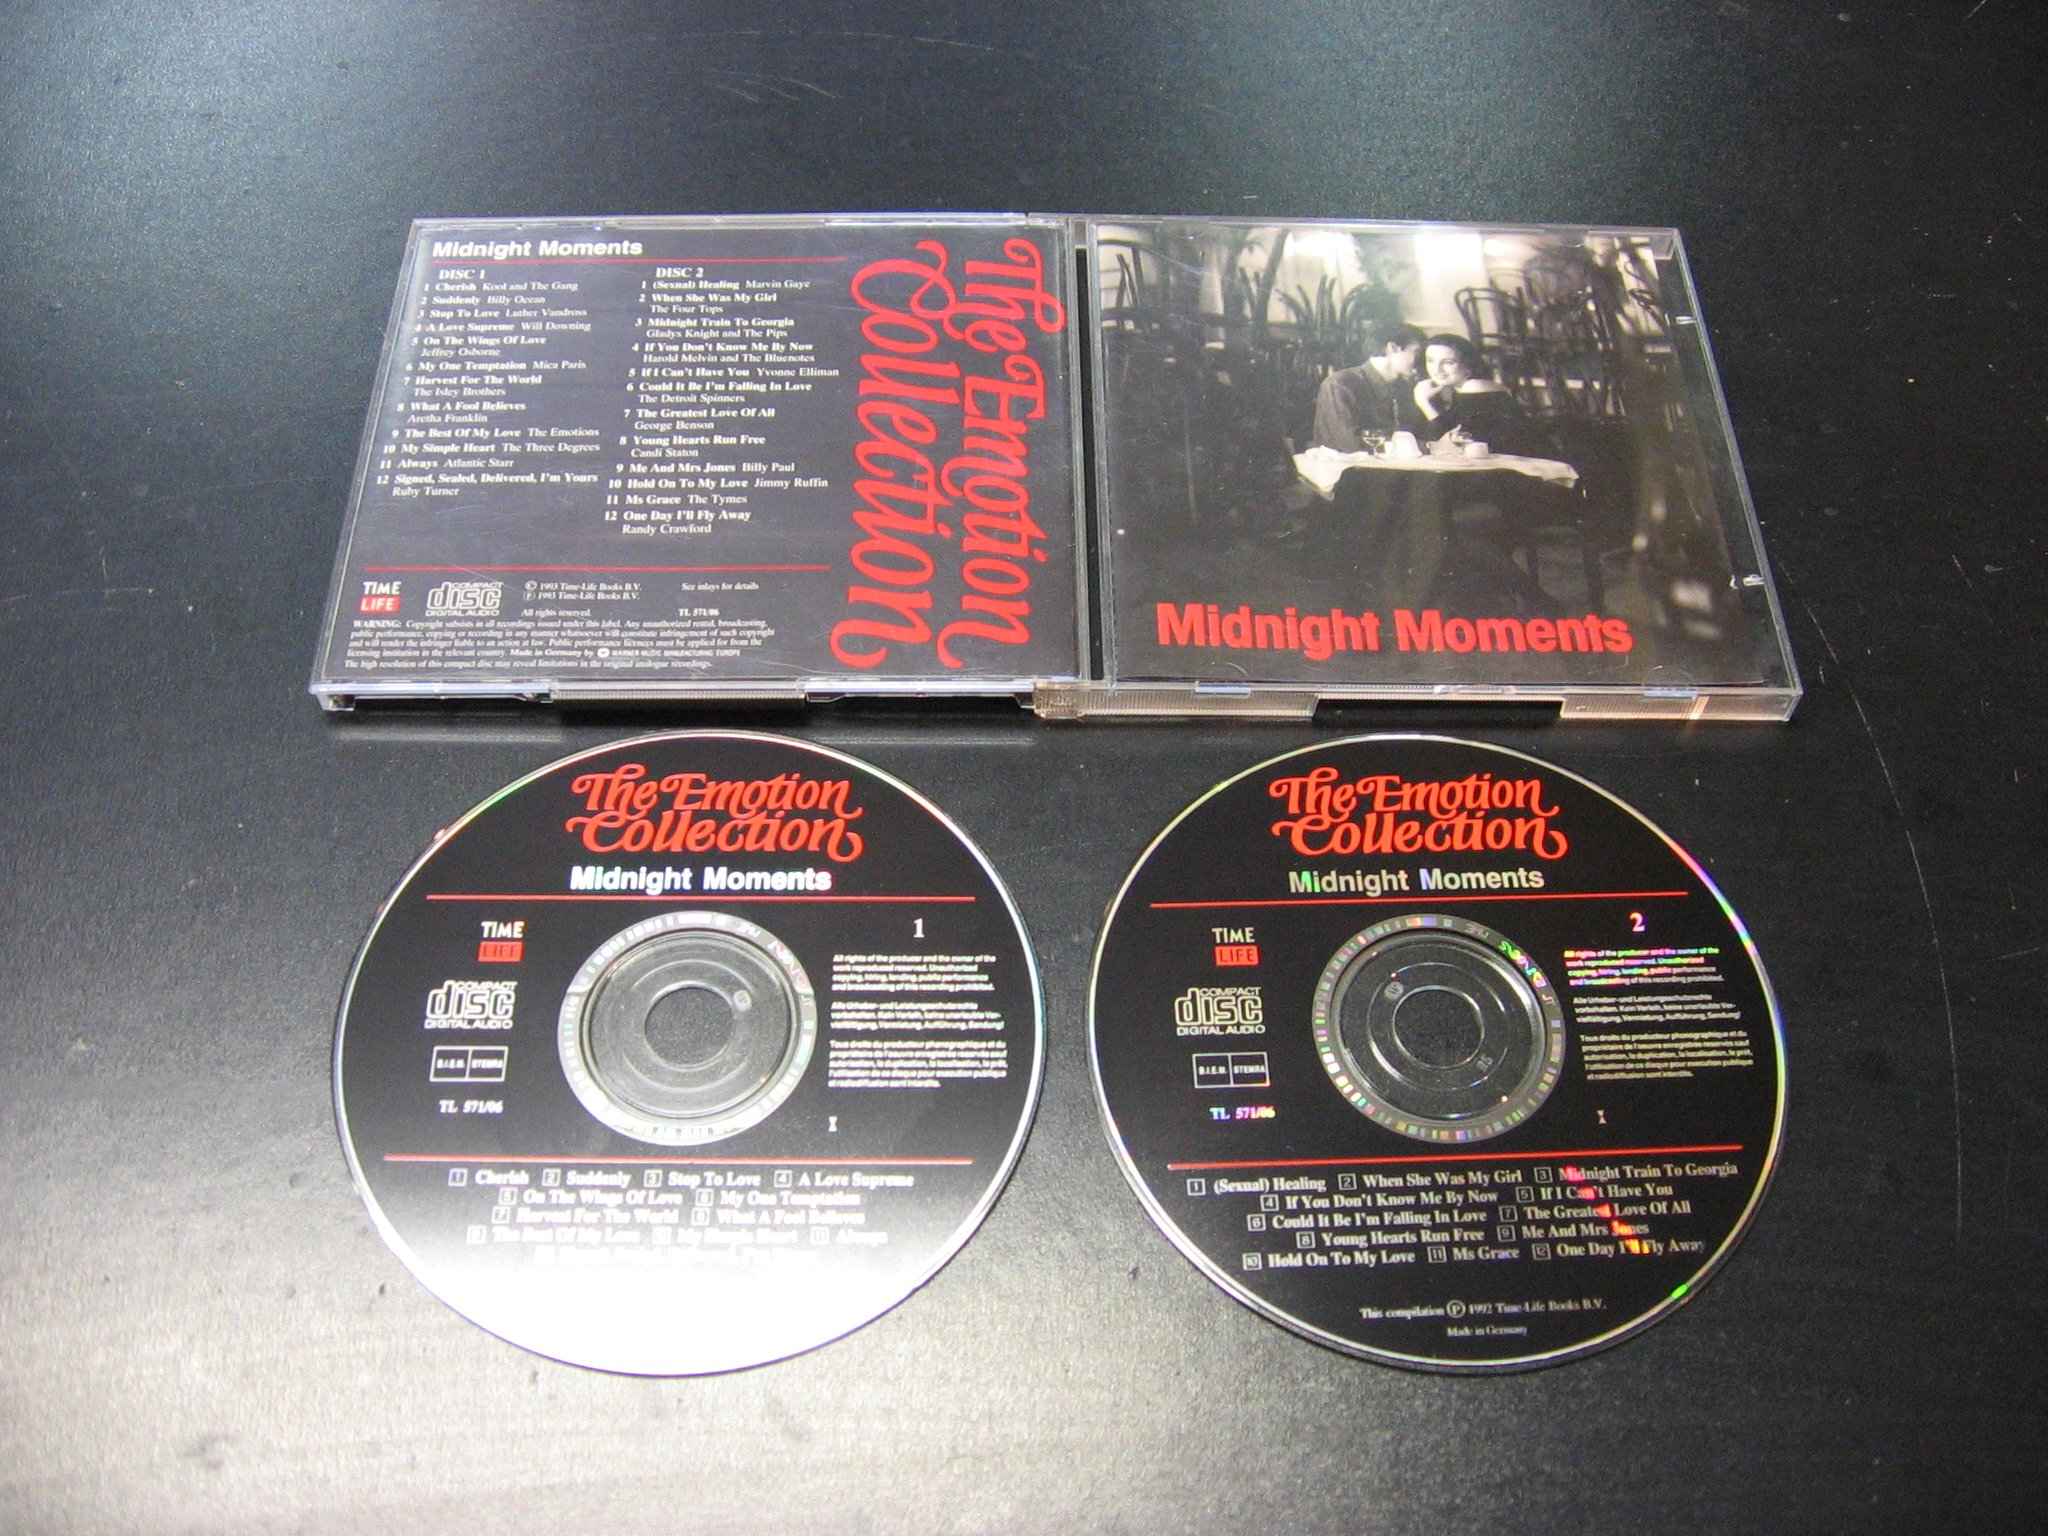 MIDNIGHT MOMENTS - 2 CD - THE EMOTION COLLECTION - Opole - AlleOpole.pl